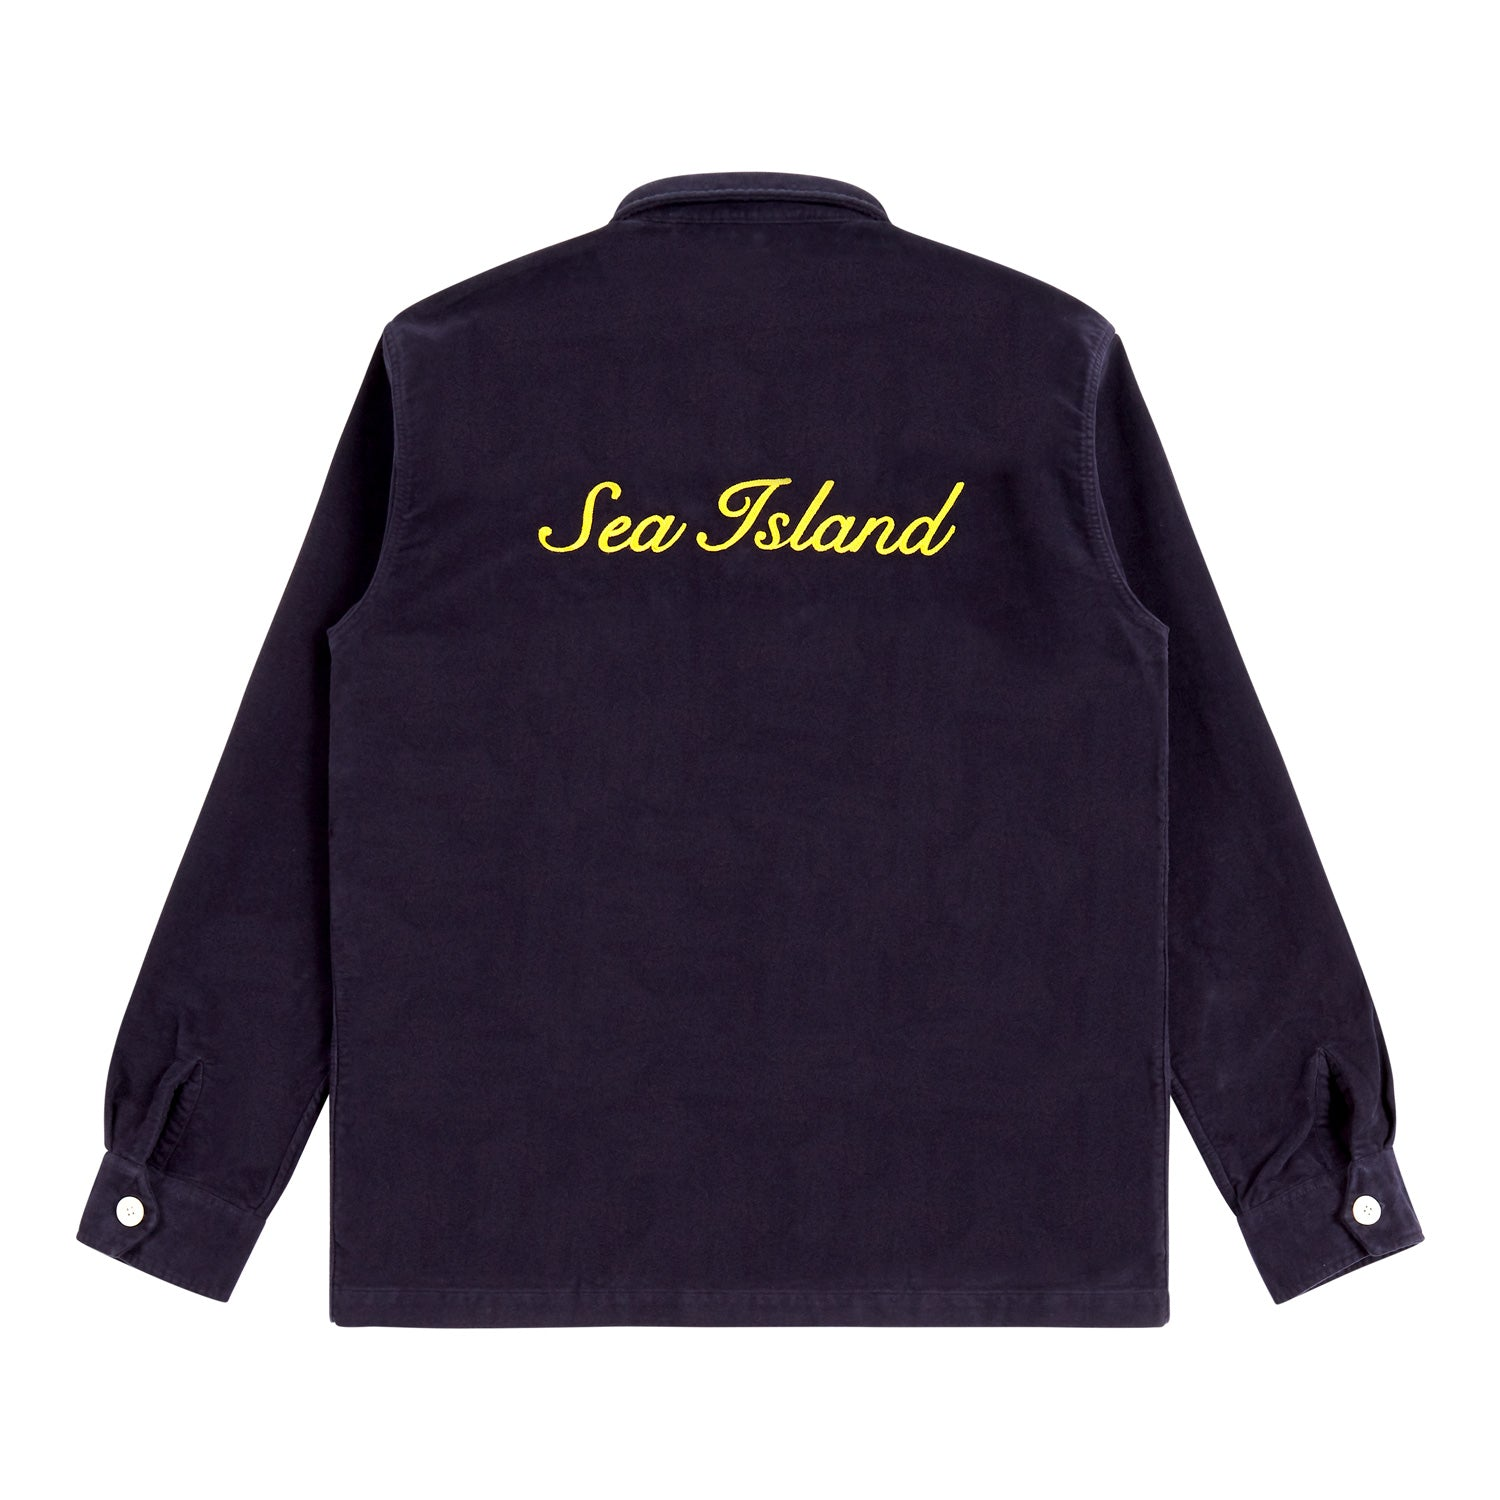 Sea Island Moleskin Studio Shirt